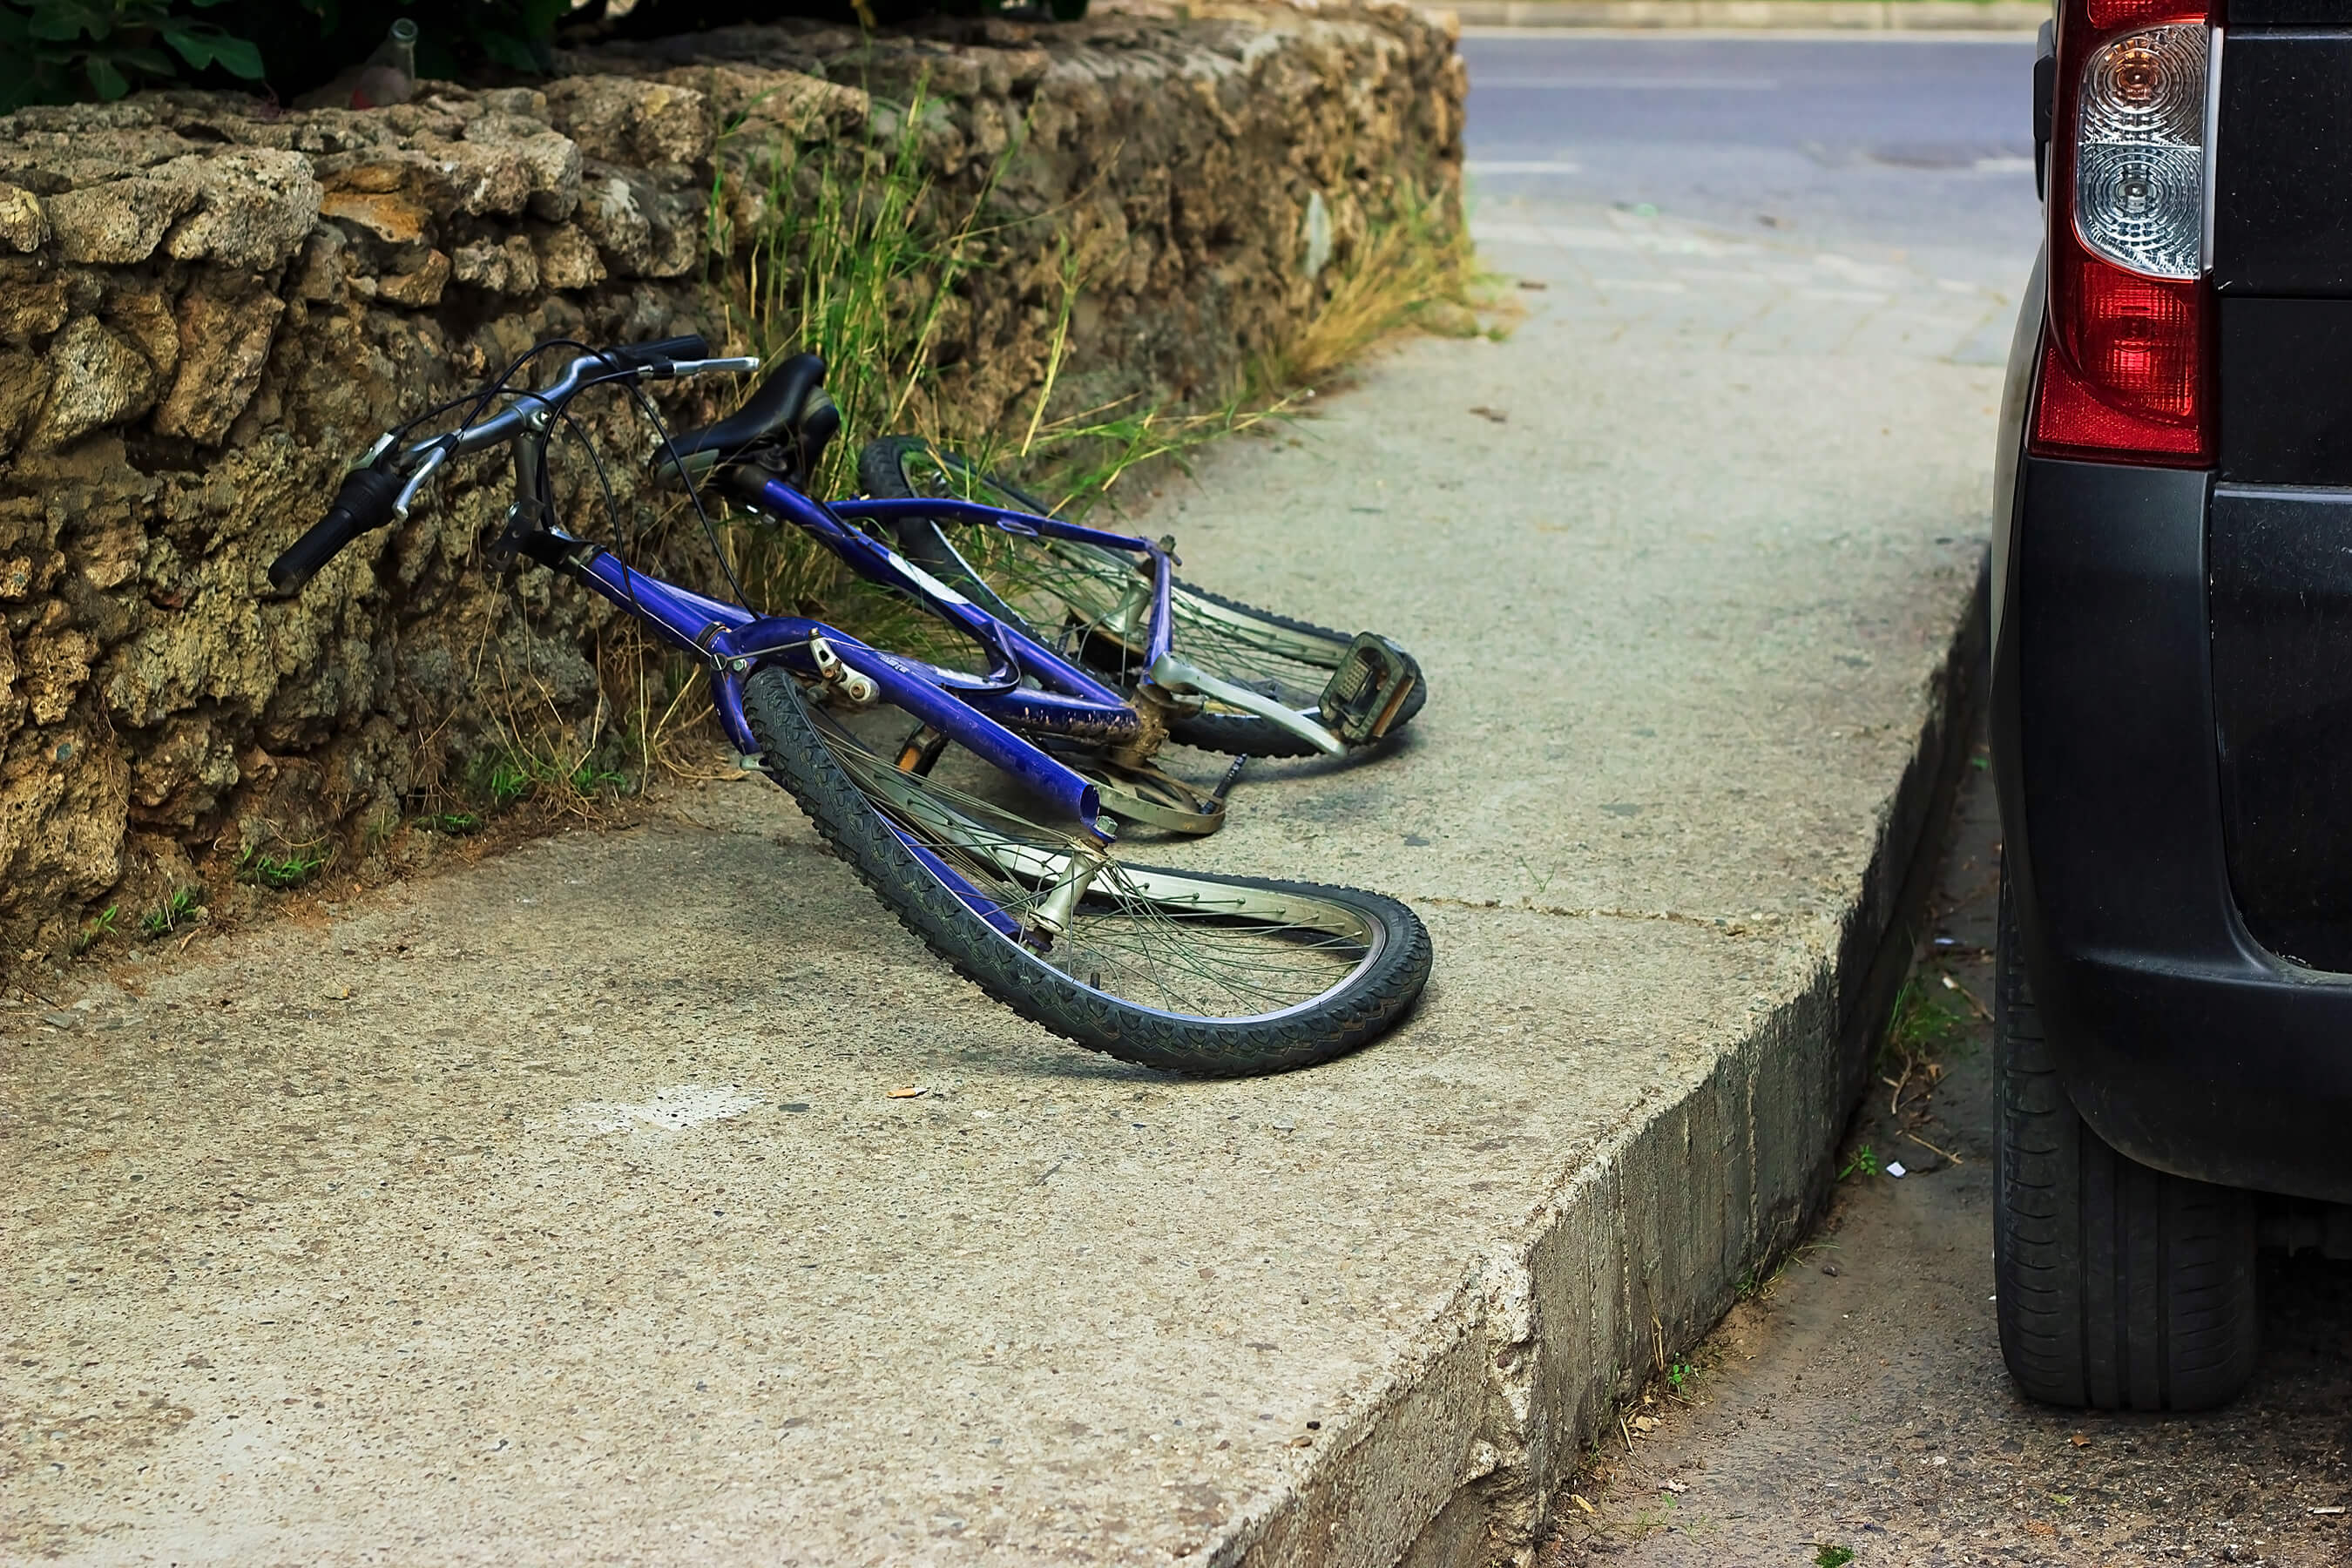 blue bicycle lying damaged on the pavement next to a black van